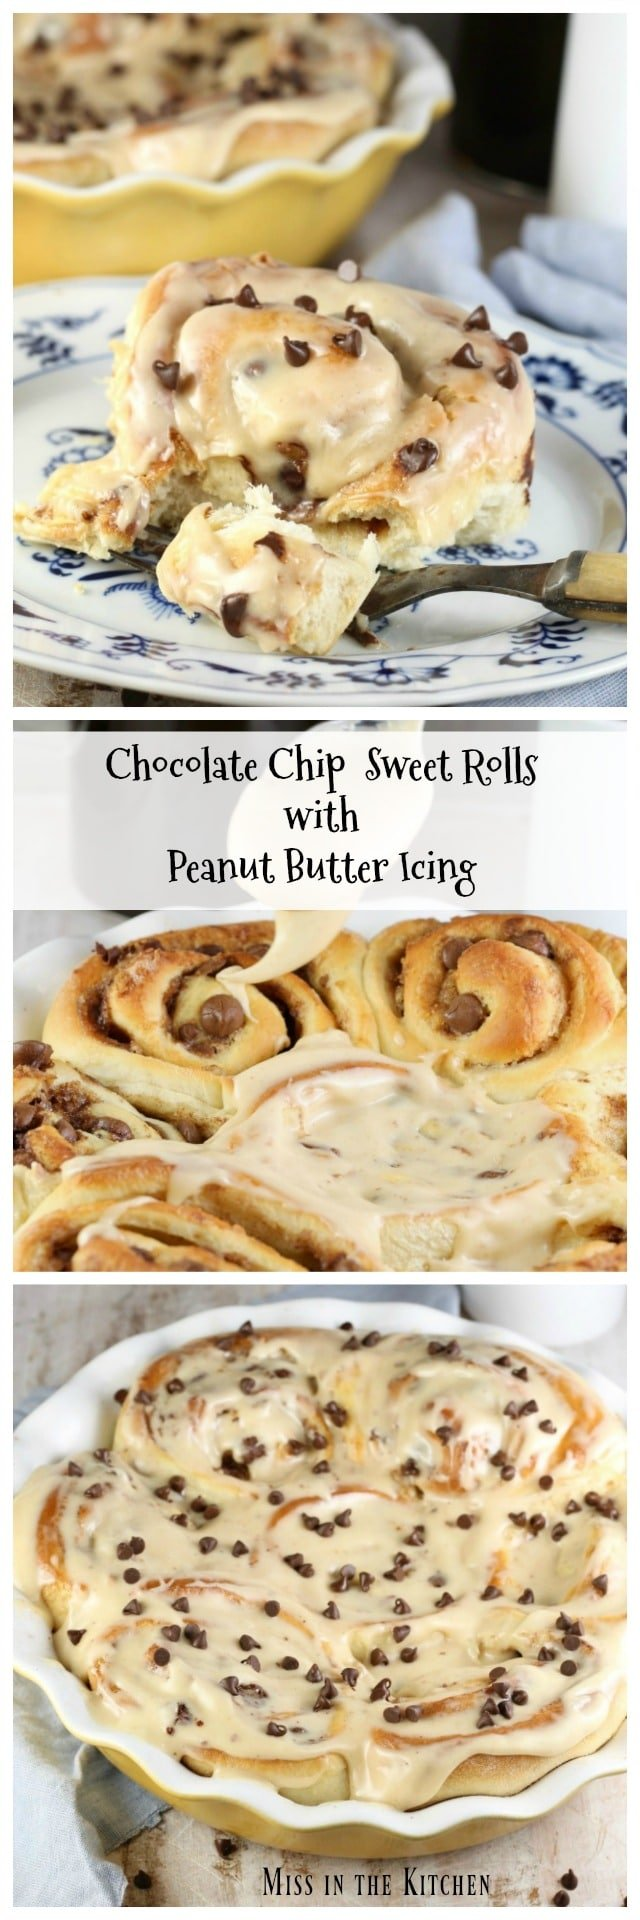 Chocolate Chip Sweet Rolls with Peanut Butter Icing Recipe that is perfect for the peanut butter and chocolate lovers! MissintheKitchen.com